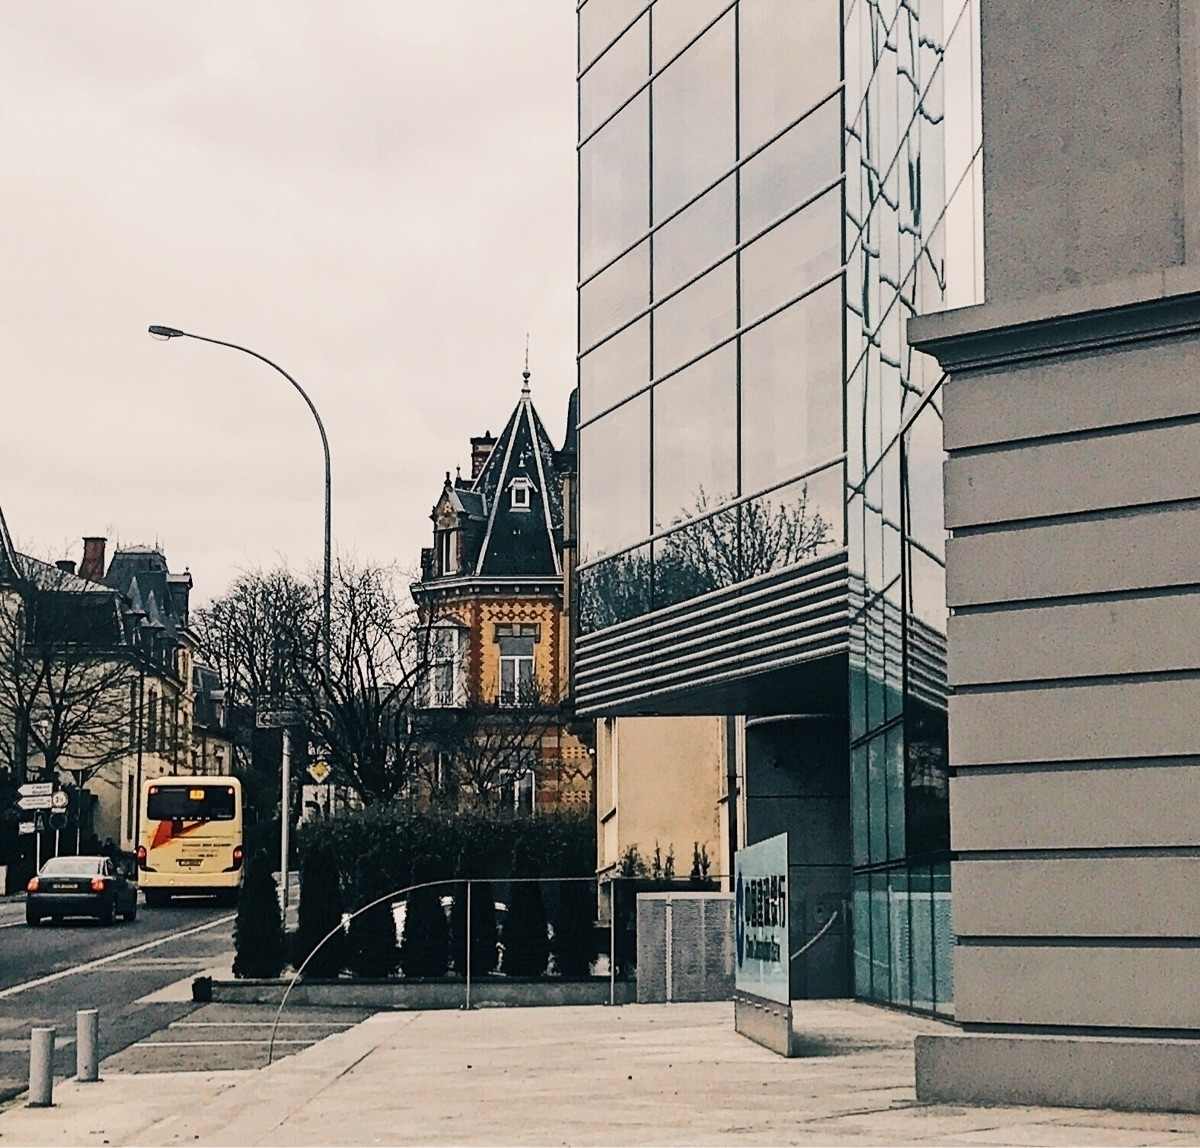 // 61/365 - 365project, luxembourgcity - markg76 | ello